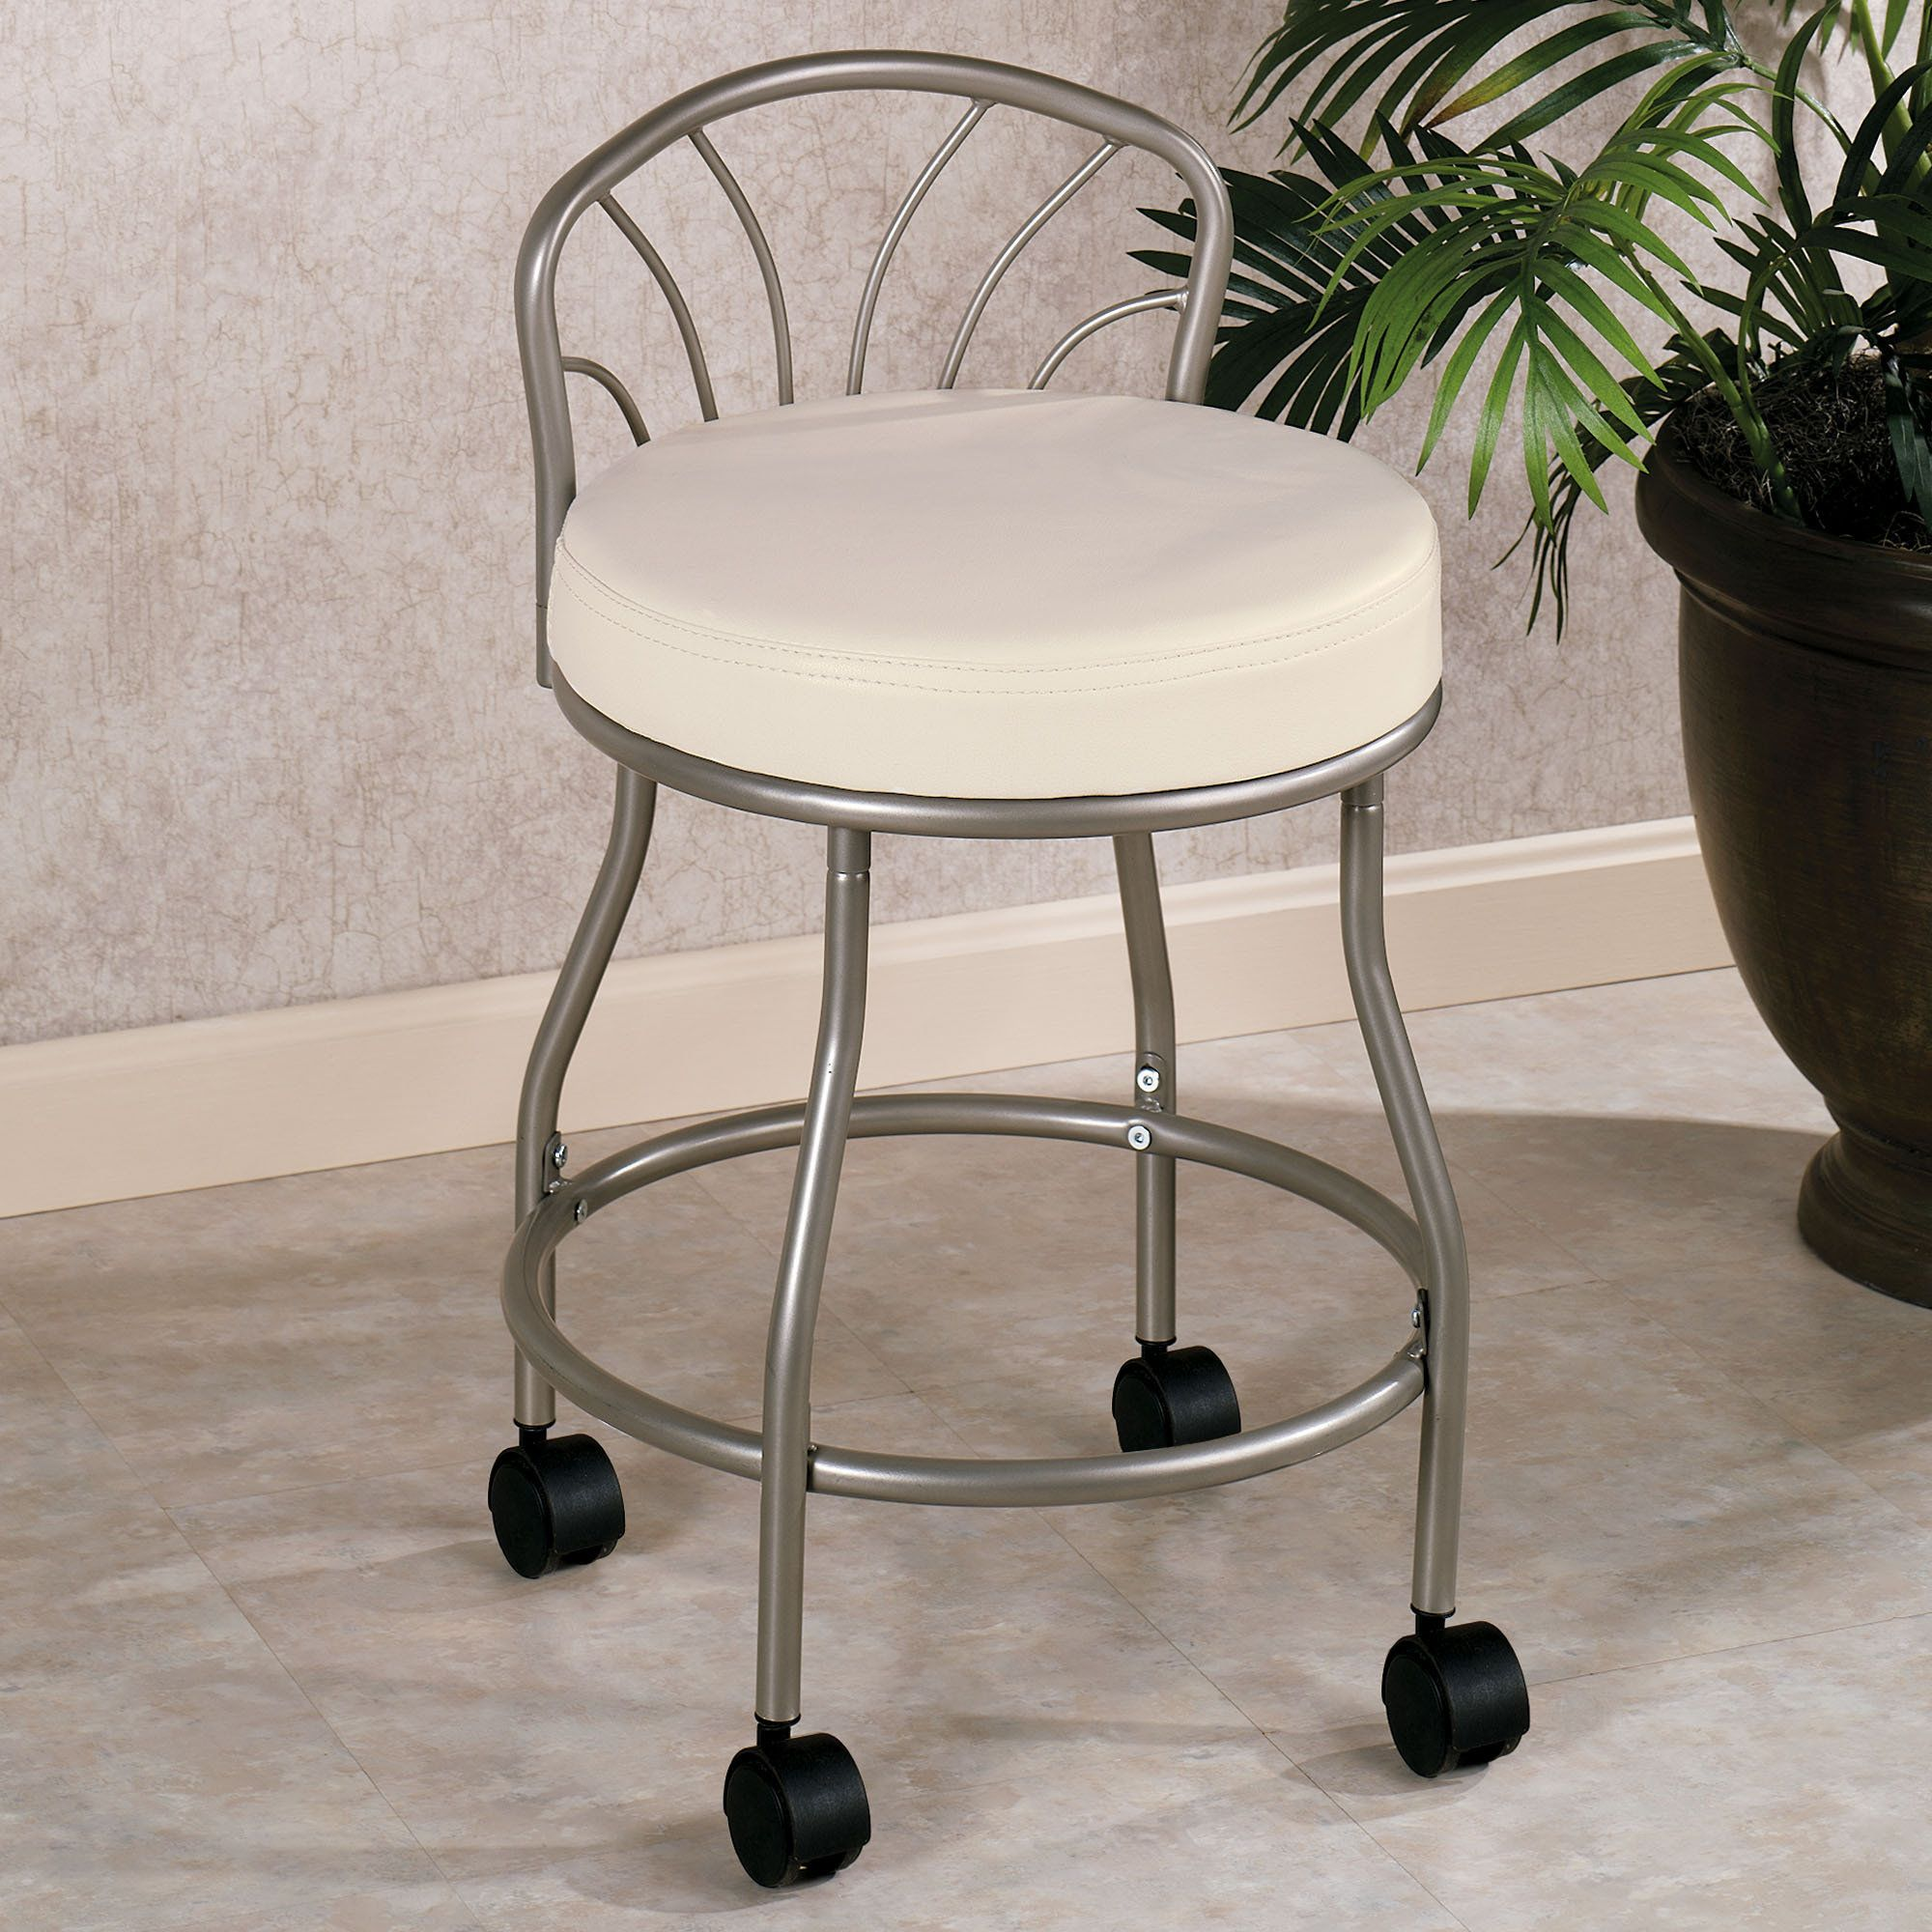 Flare Back Powder Coat Nickel Finish Vanity Chair With Casters